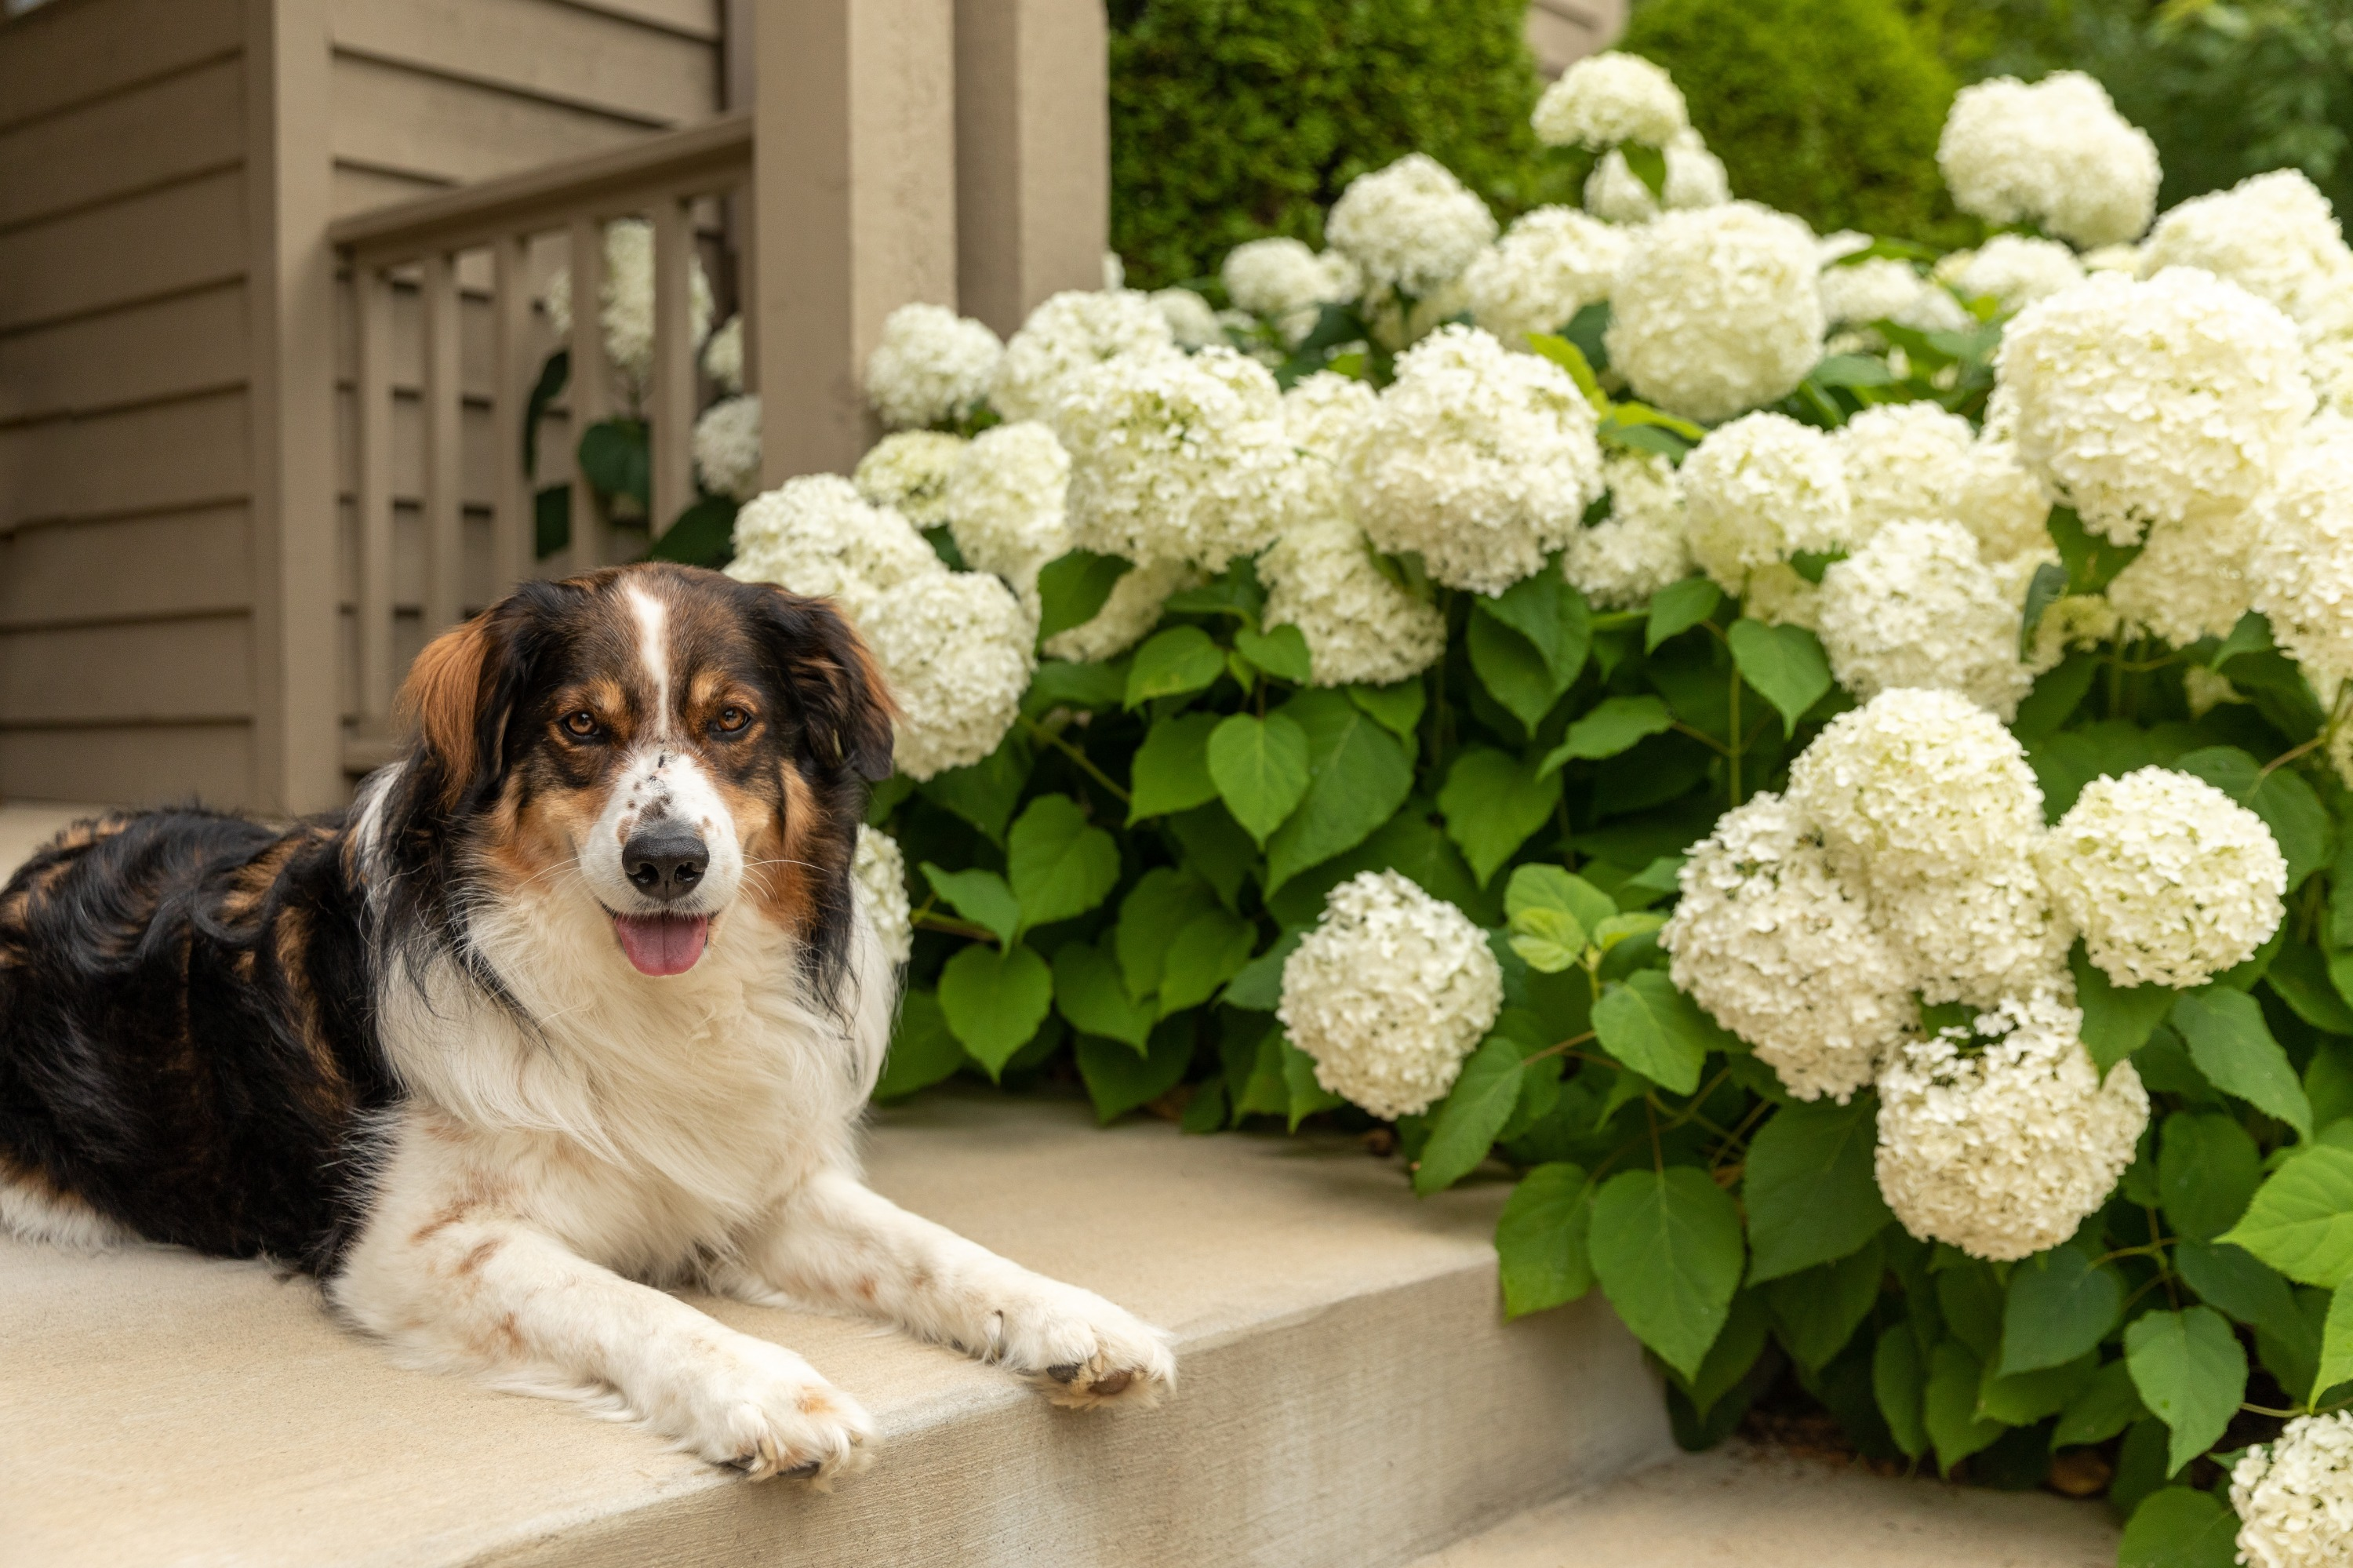 A black, brown, and white shepherd dog on a concrete porch of a brown house next to white hydrangeas.